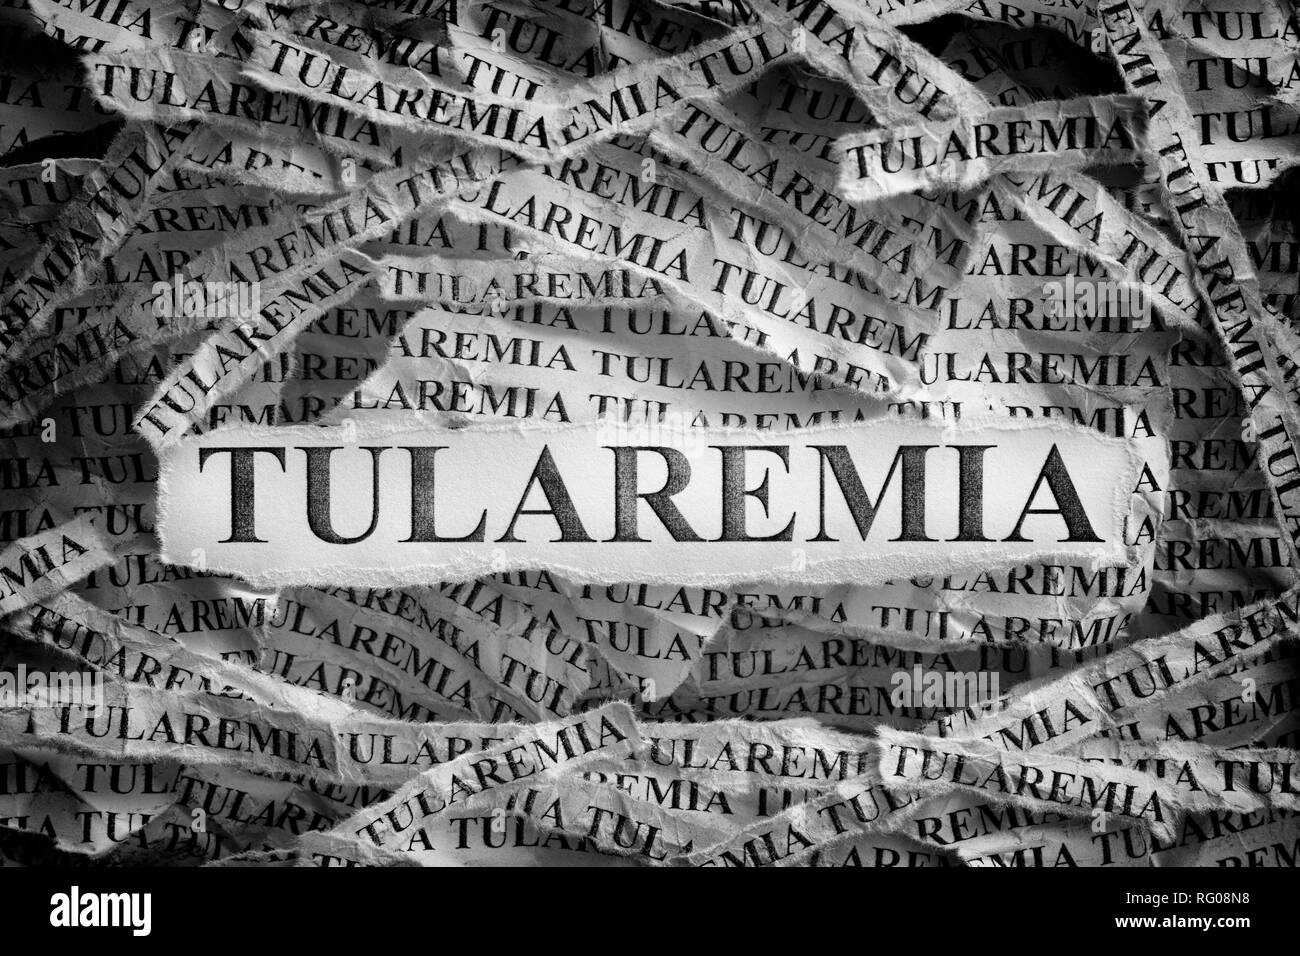 Tularemia. Torn pieces of paper with the words Tularemia. Concept image. Black and White. Close up. - Stock Image